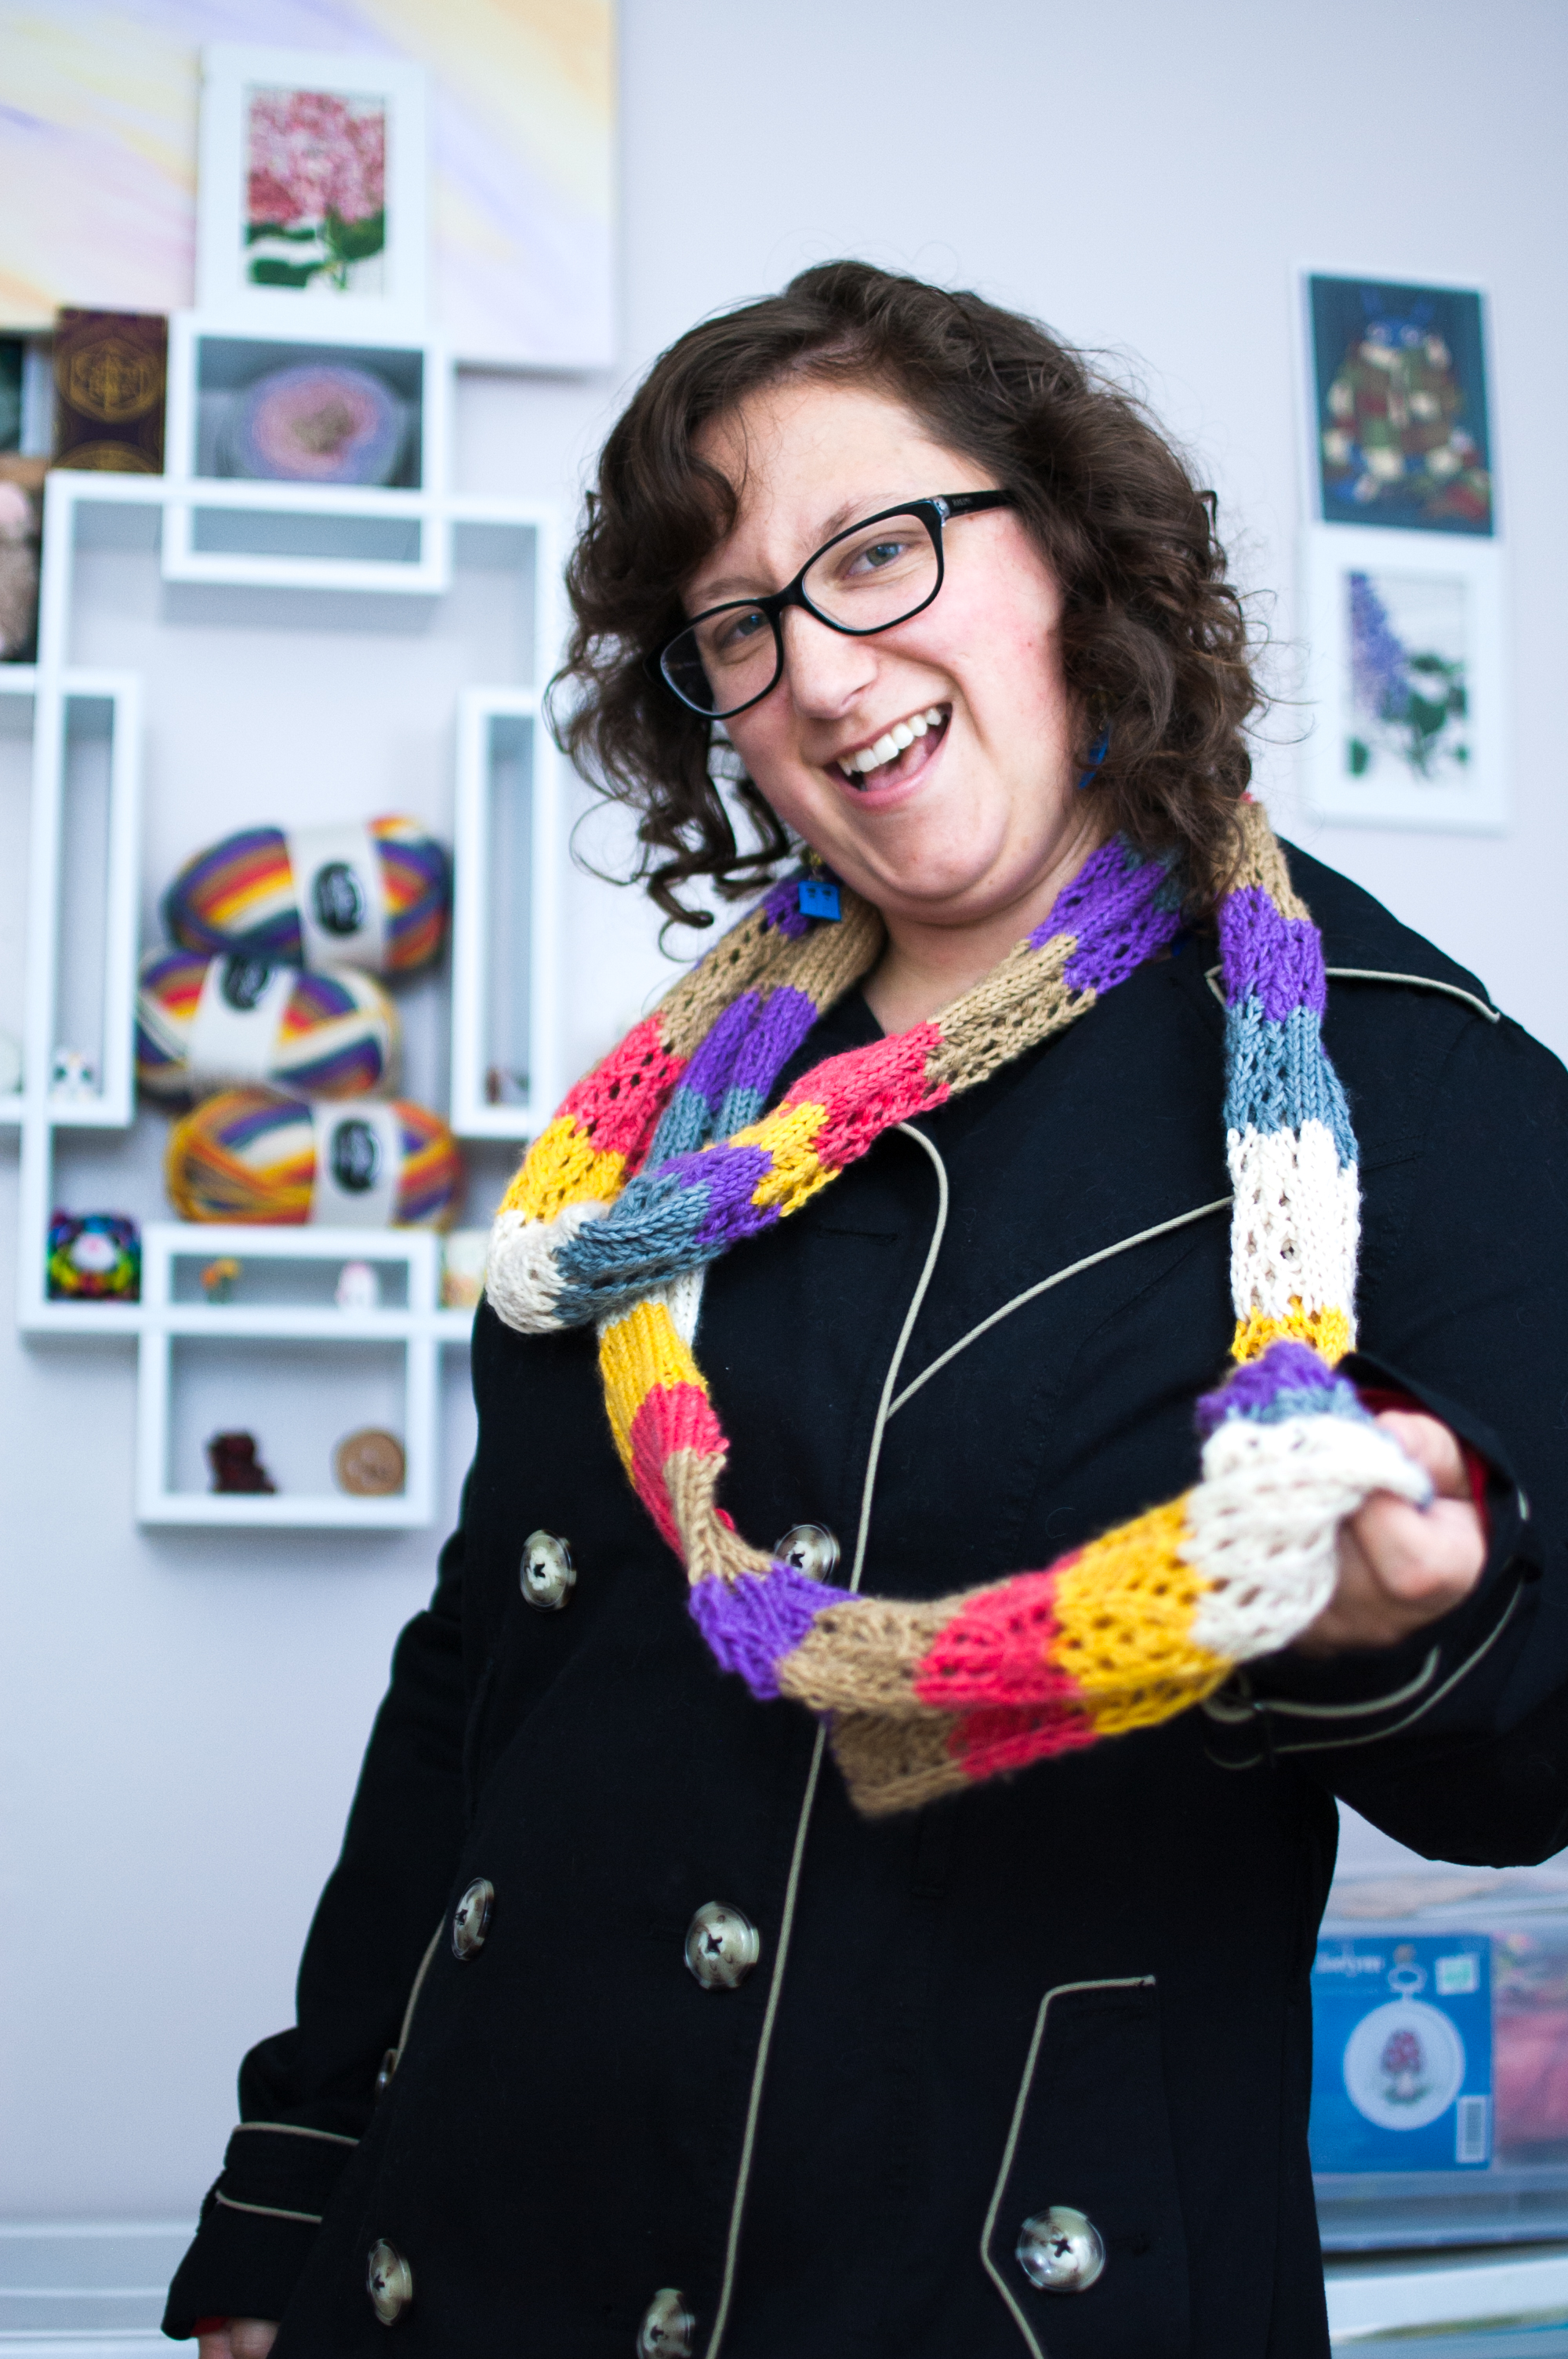 A geeky knitter wearing a fancy Doctor Who-inspired knitted scarf